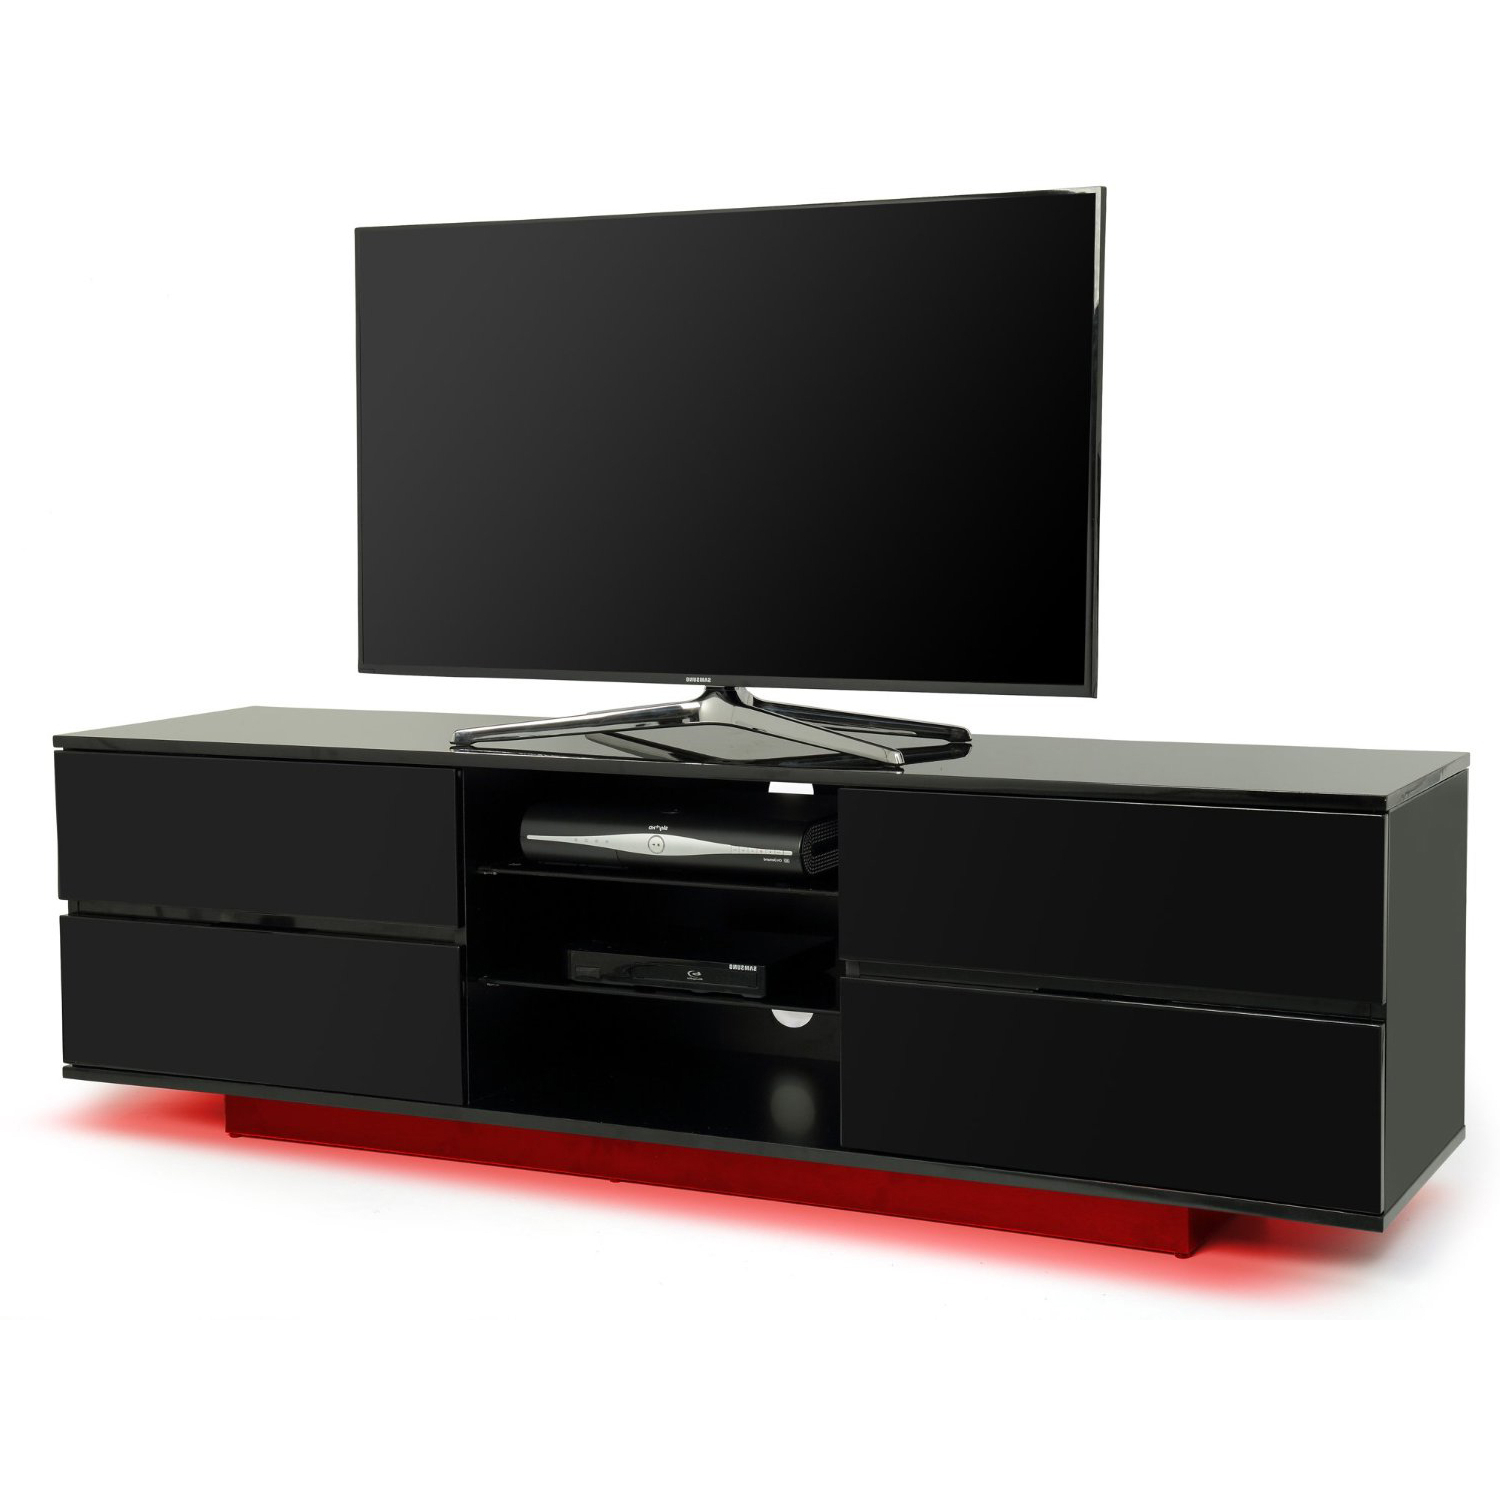 Centurion Supports Avitus Gloss Black 4 Drawer With Red Led Lights Pertaining To Widely Used Black And Red Tv Stands (View 10 of 20)